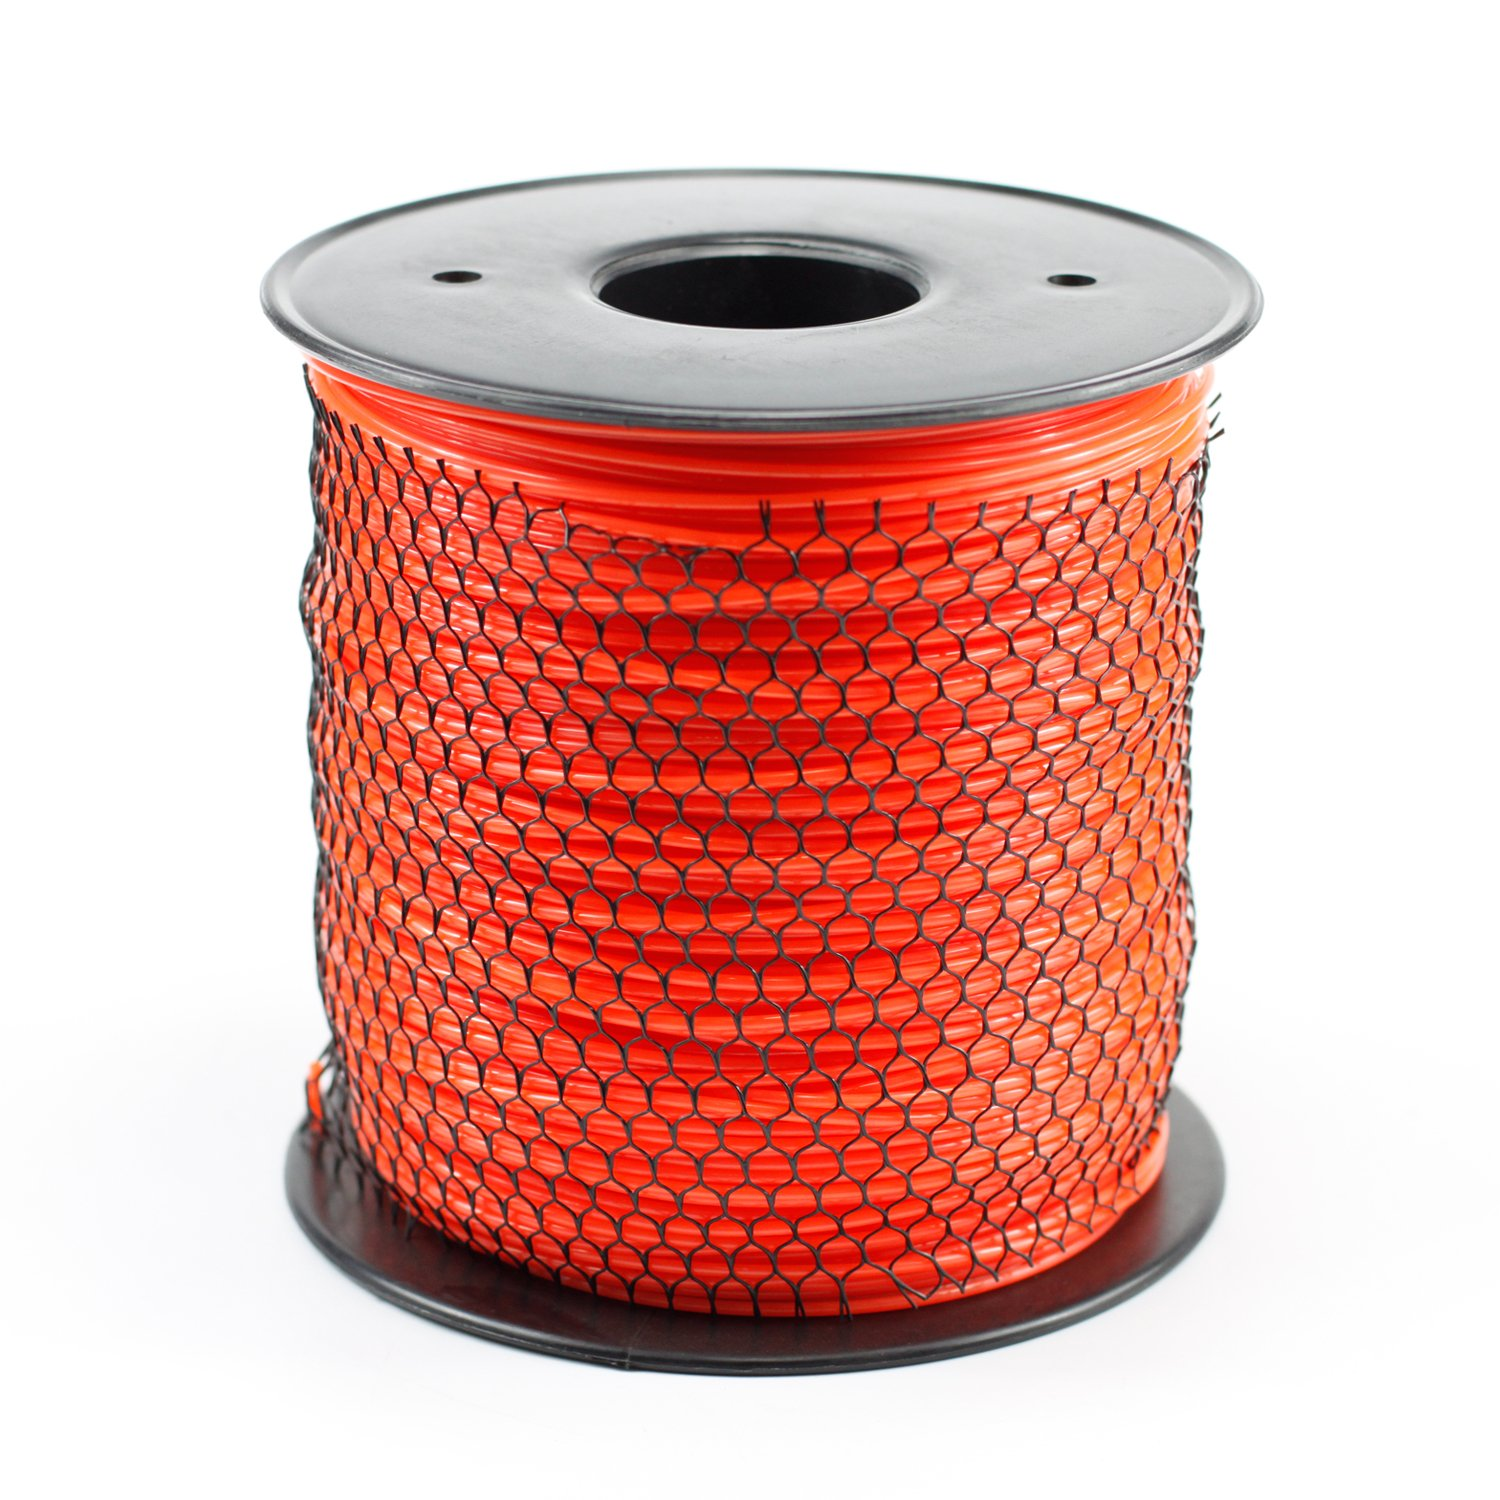 Parts Camp Trimmer Line .095 5Lb Orange Round 1430' Length Commercial Spool of line by Parts Camp